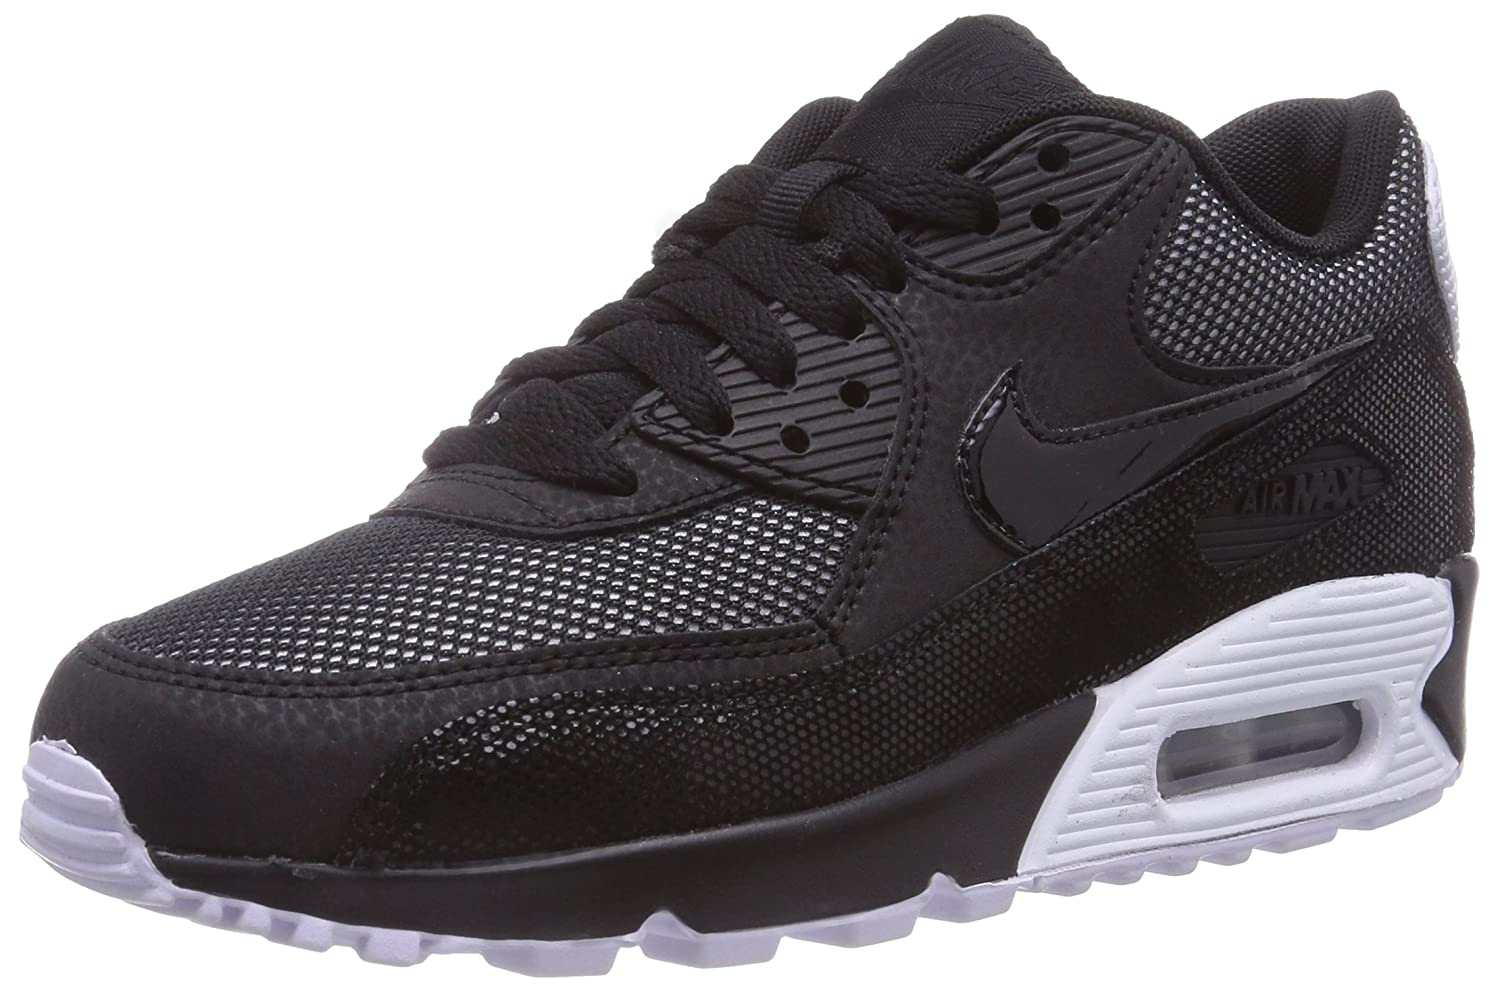 buy popular 77b75 bbb86 Nike Womens Air Max 90 Premium Running Shoe Black Size 3 Amazon.co.uk  Shoes  Bags